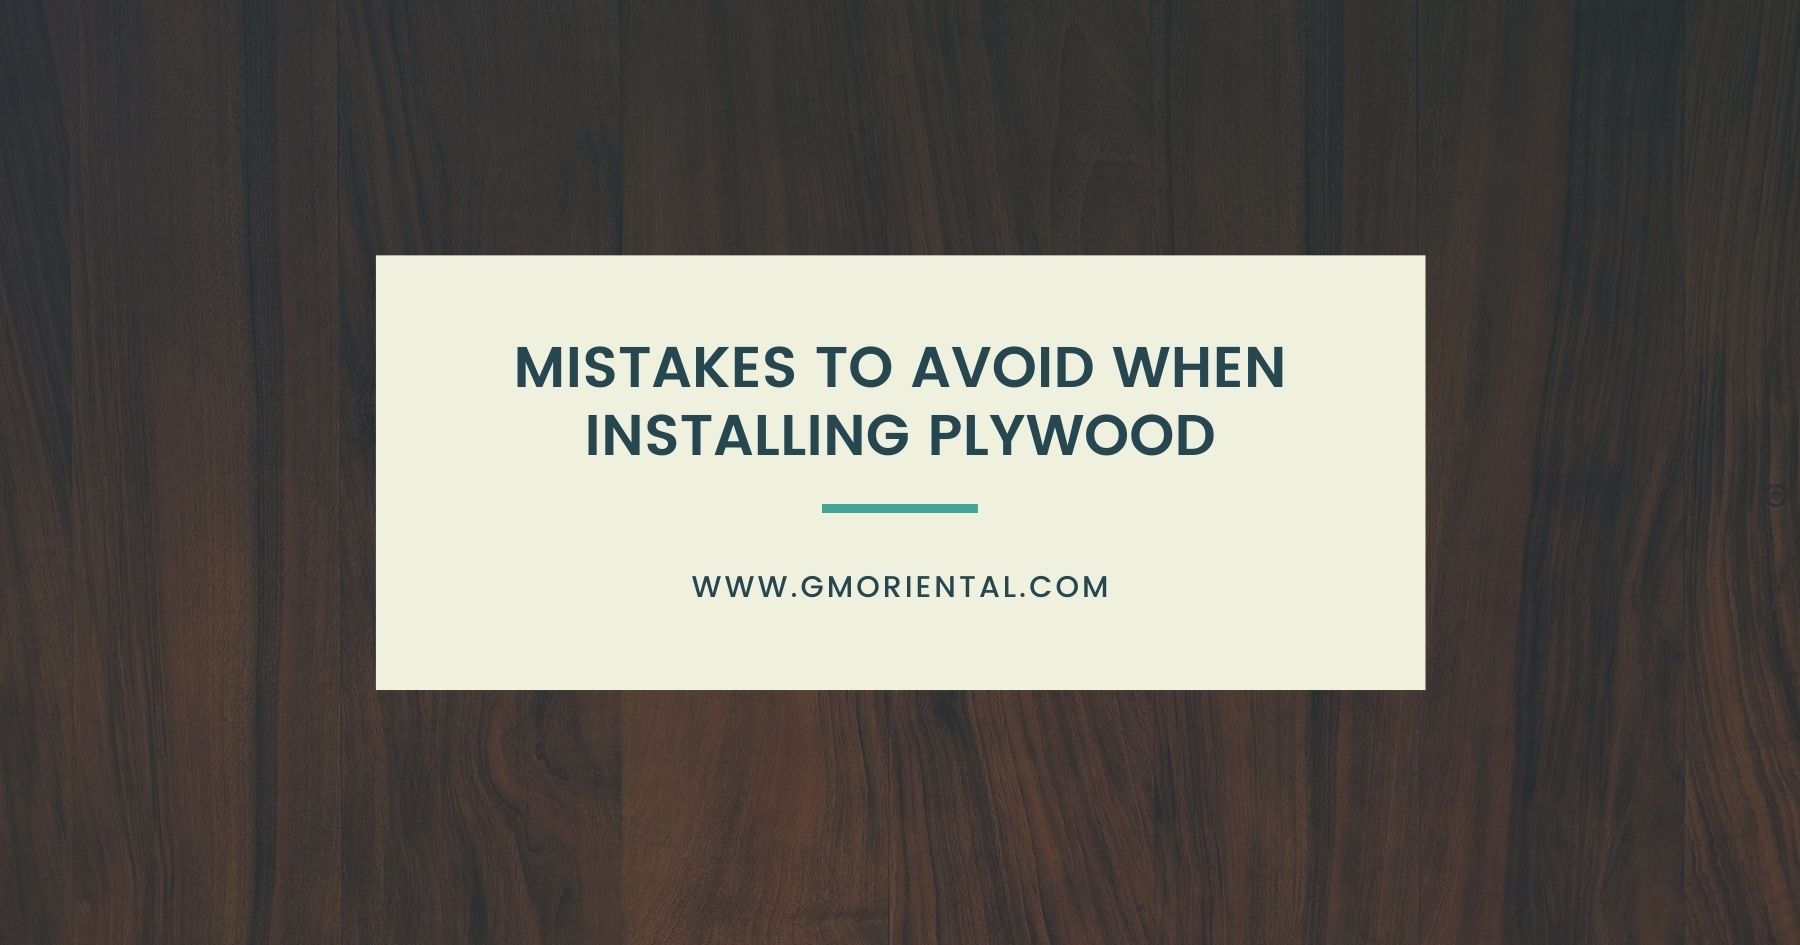 5 Mistakes That You Should Avoid When Installing Plywood